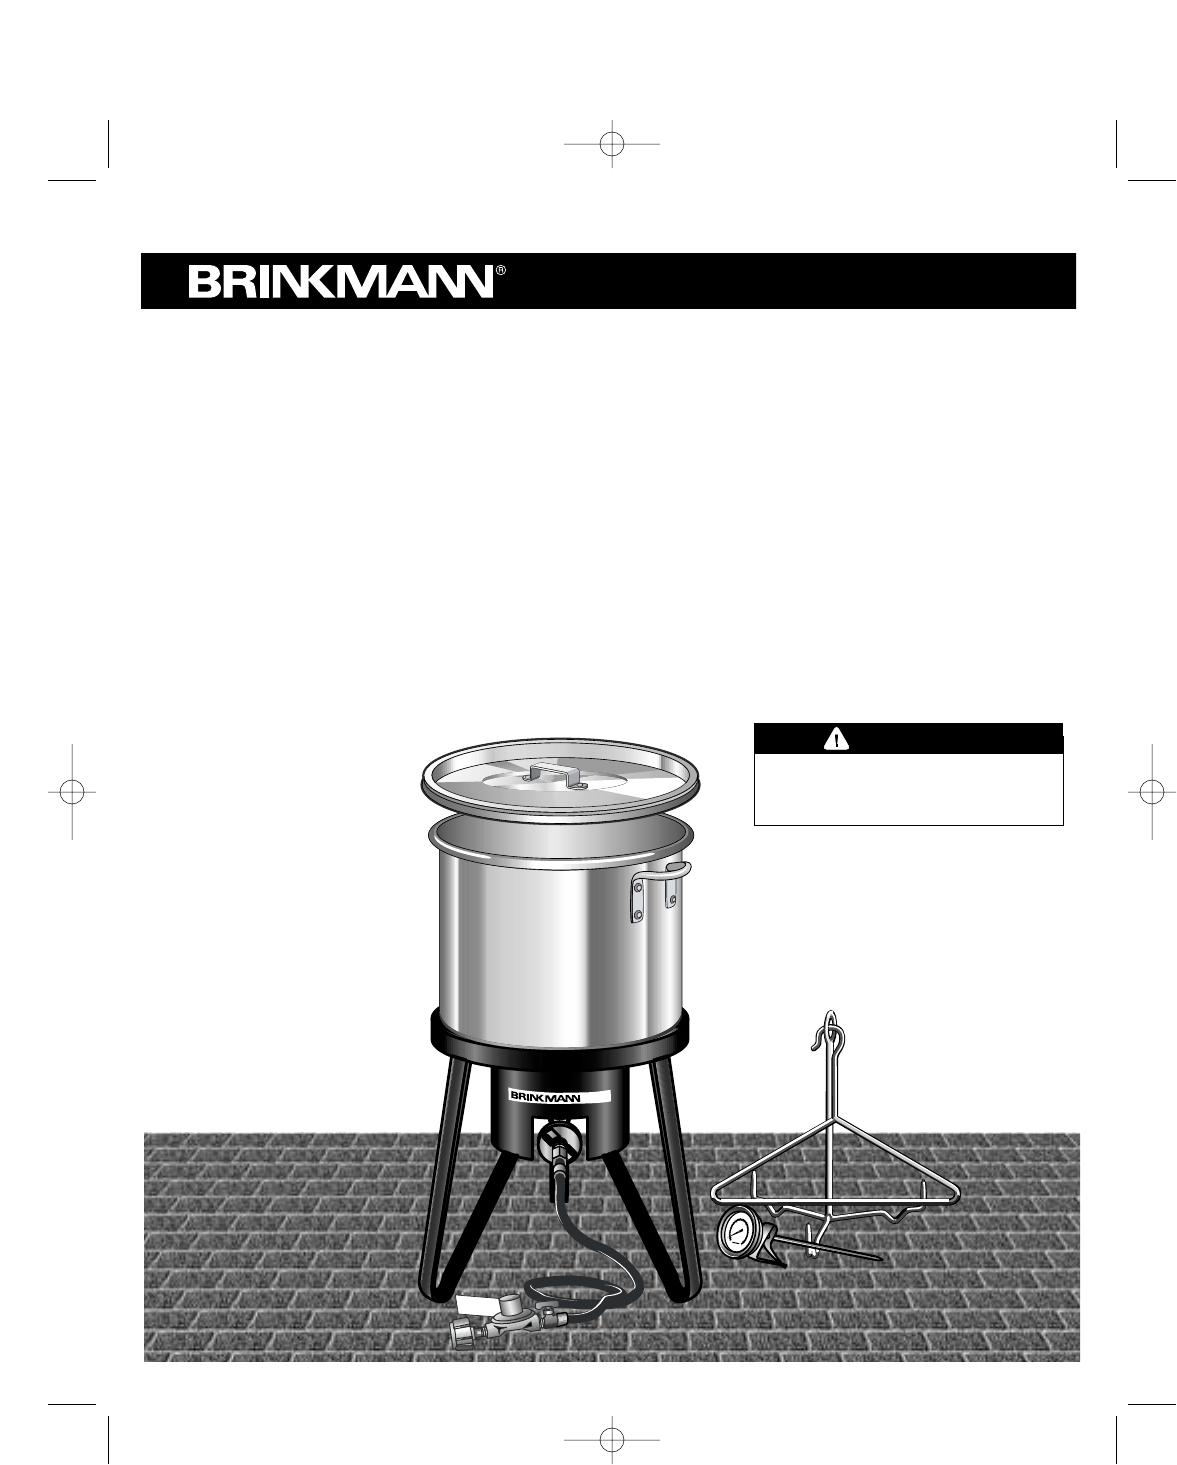 brinkmann turkey fryer 812 3325 7 user guide manualsonline com rh outdoorcooking manualsonline com Brinkmann Turkey Fryer Strainer Brinkmann 30 Qt Turkey Fryer